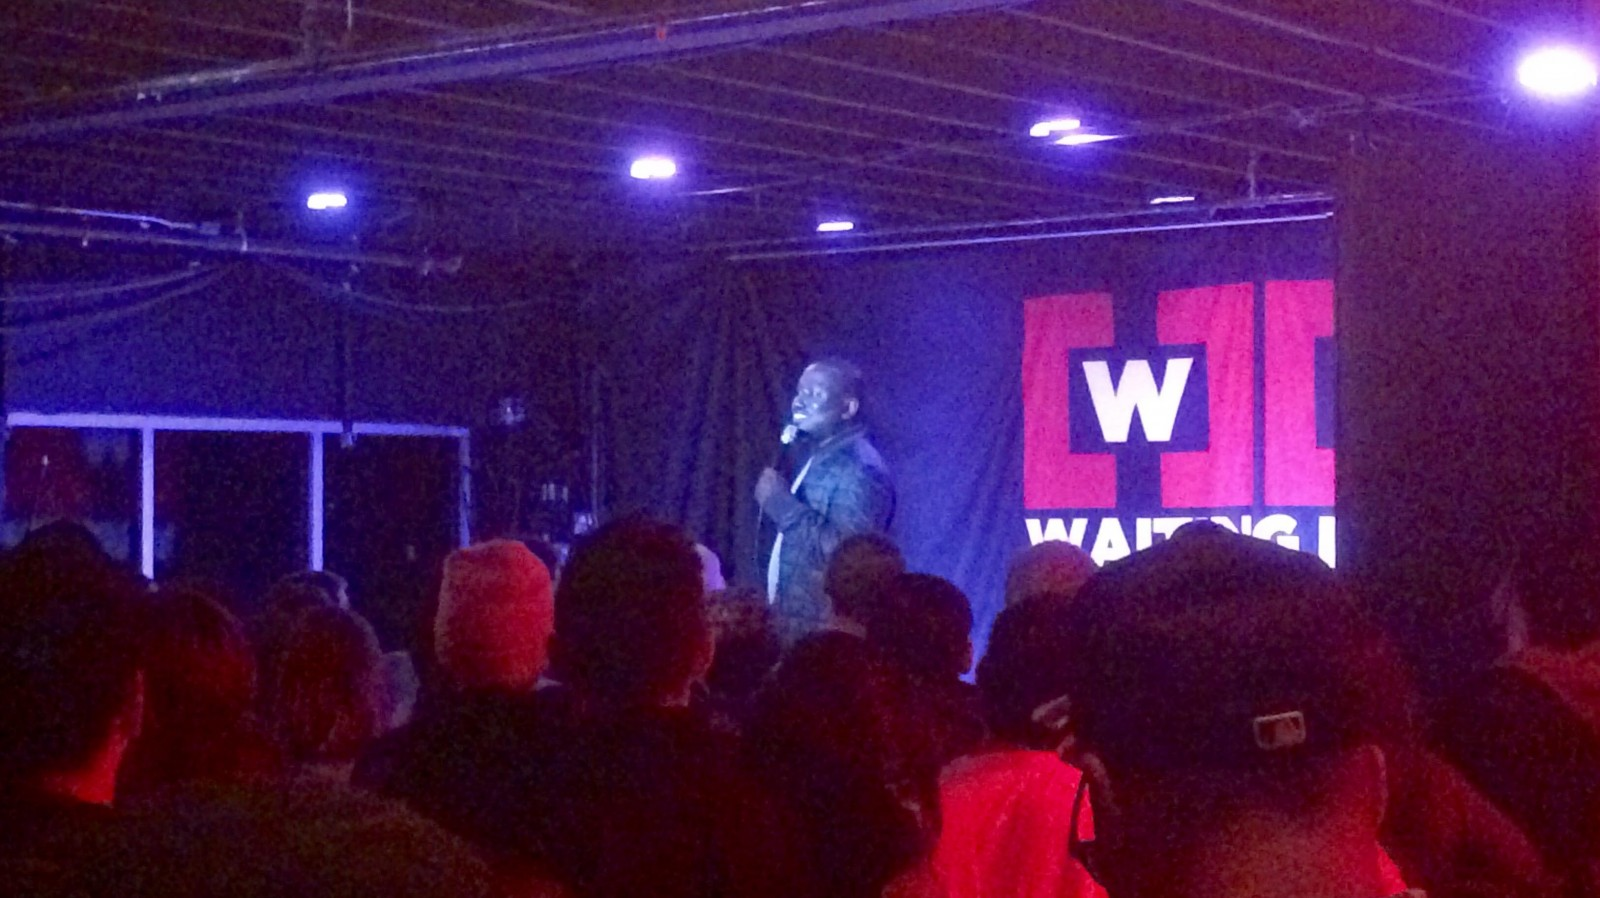 Hannibal Buress delivers in surprise performance at Waiting Room ...